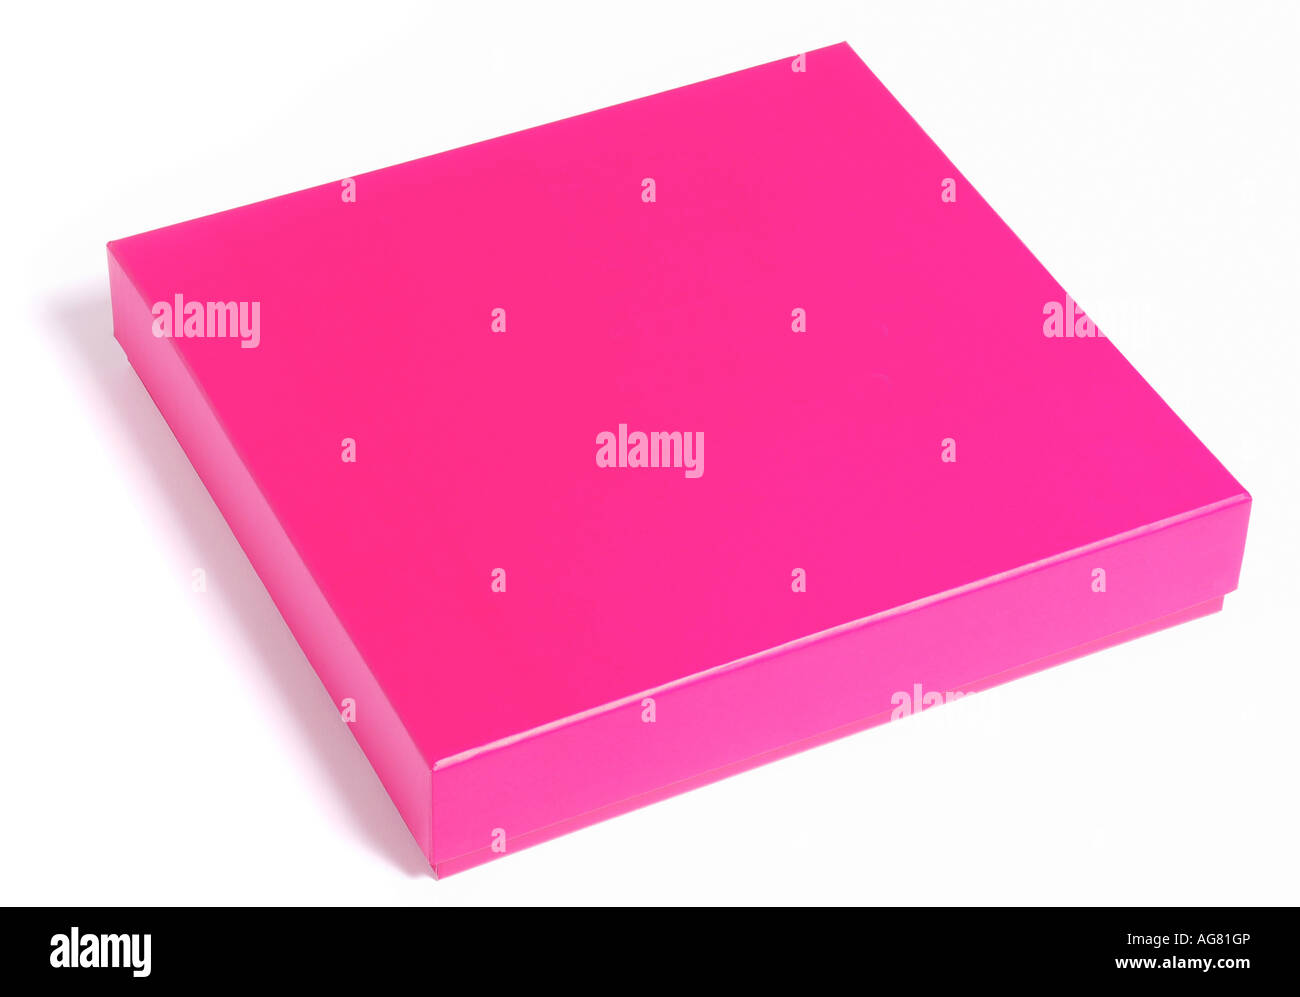 Pink gift box. Picture by Paddy McGuinness paddymcguinness - Stock Image